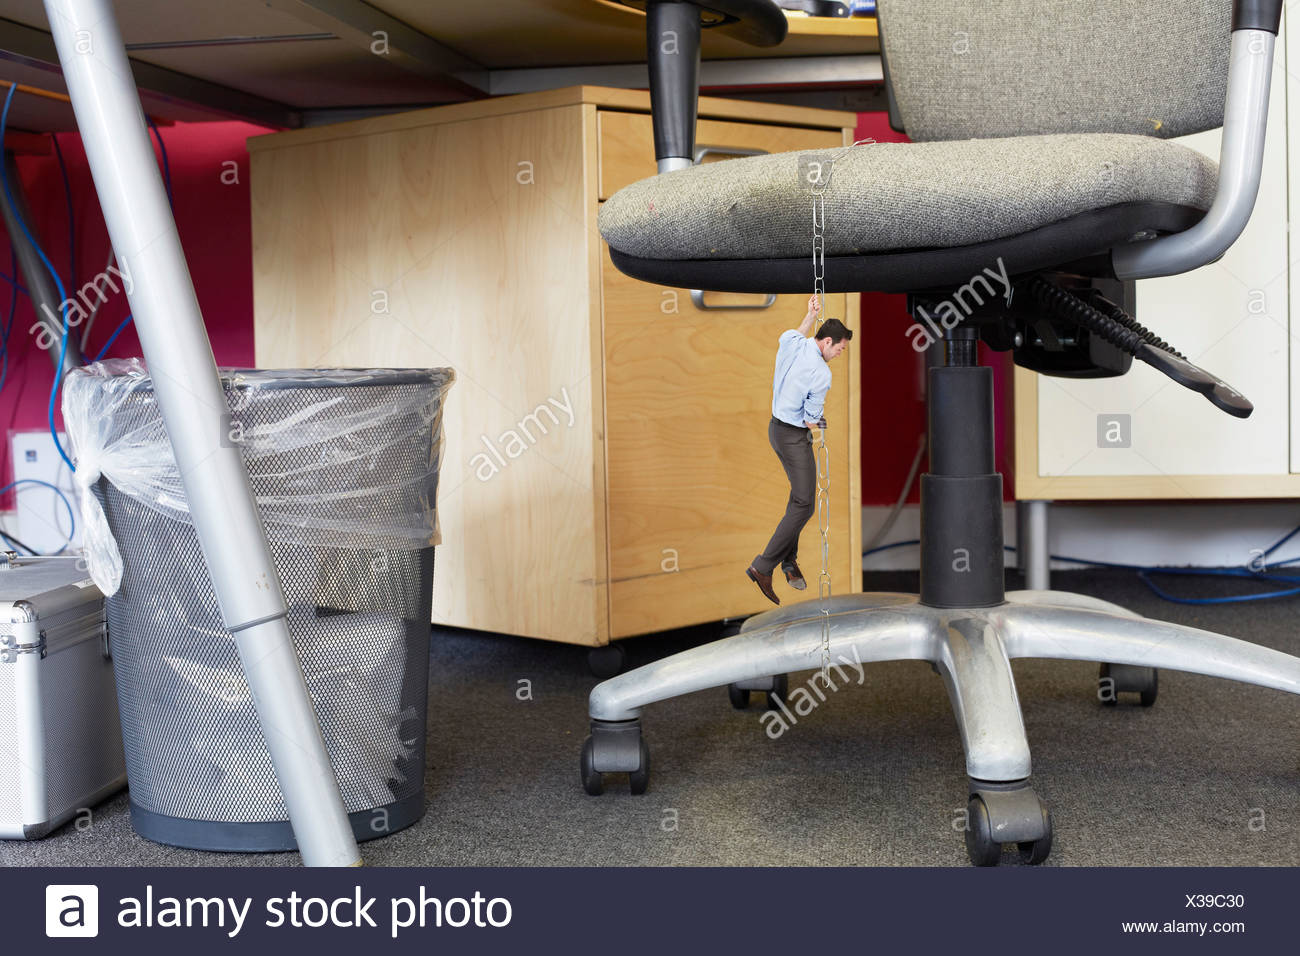 Businessman climbing down large paper clips on oversized office chair - Stock Image